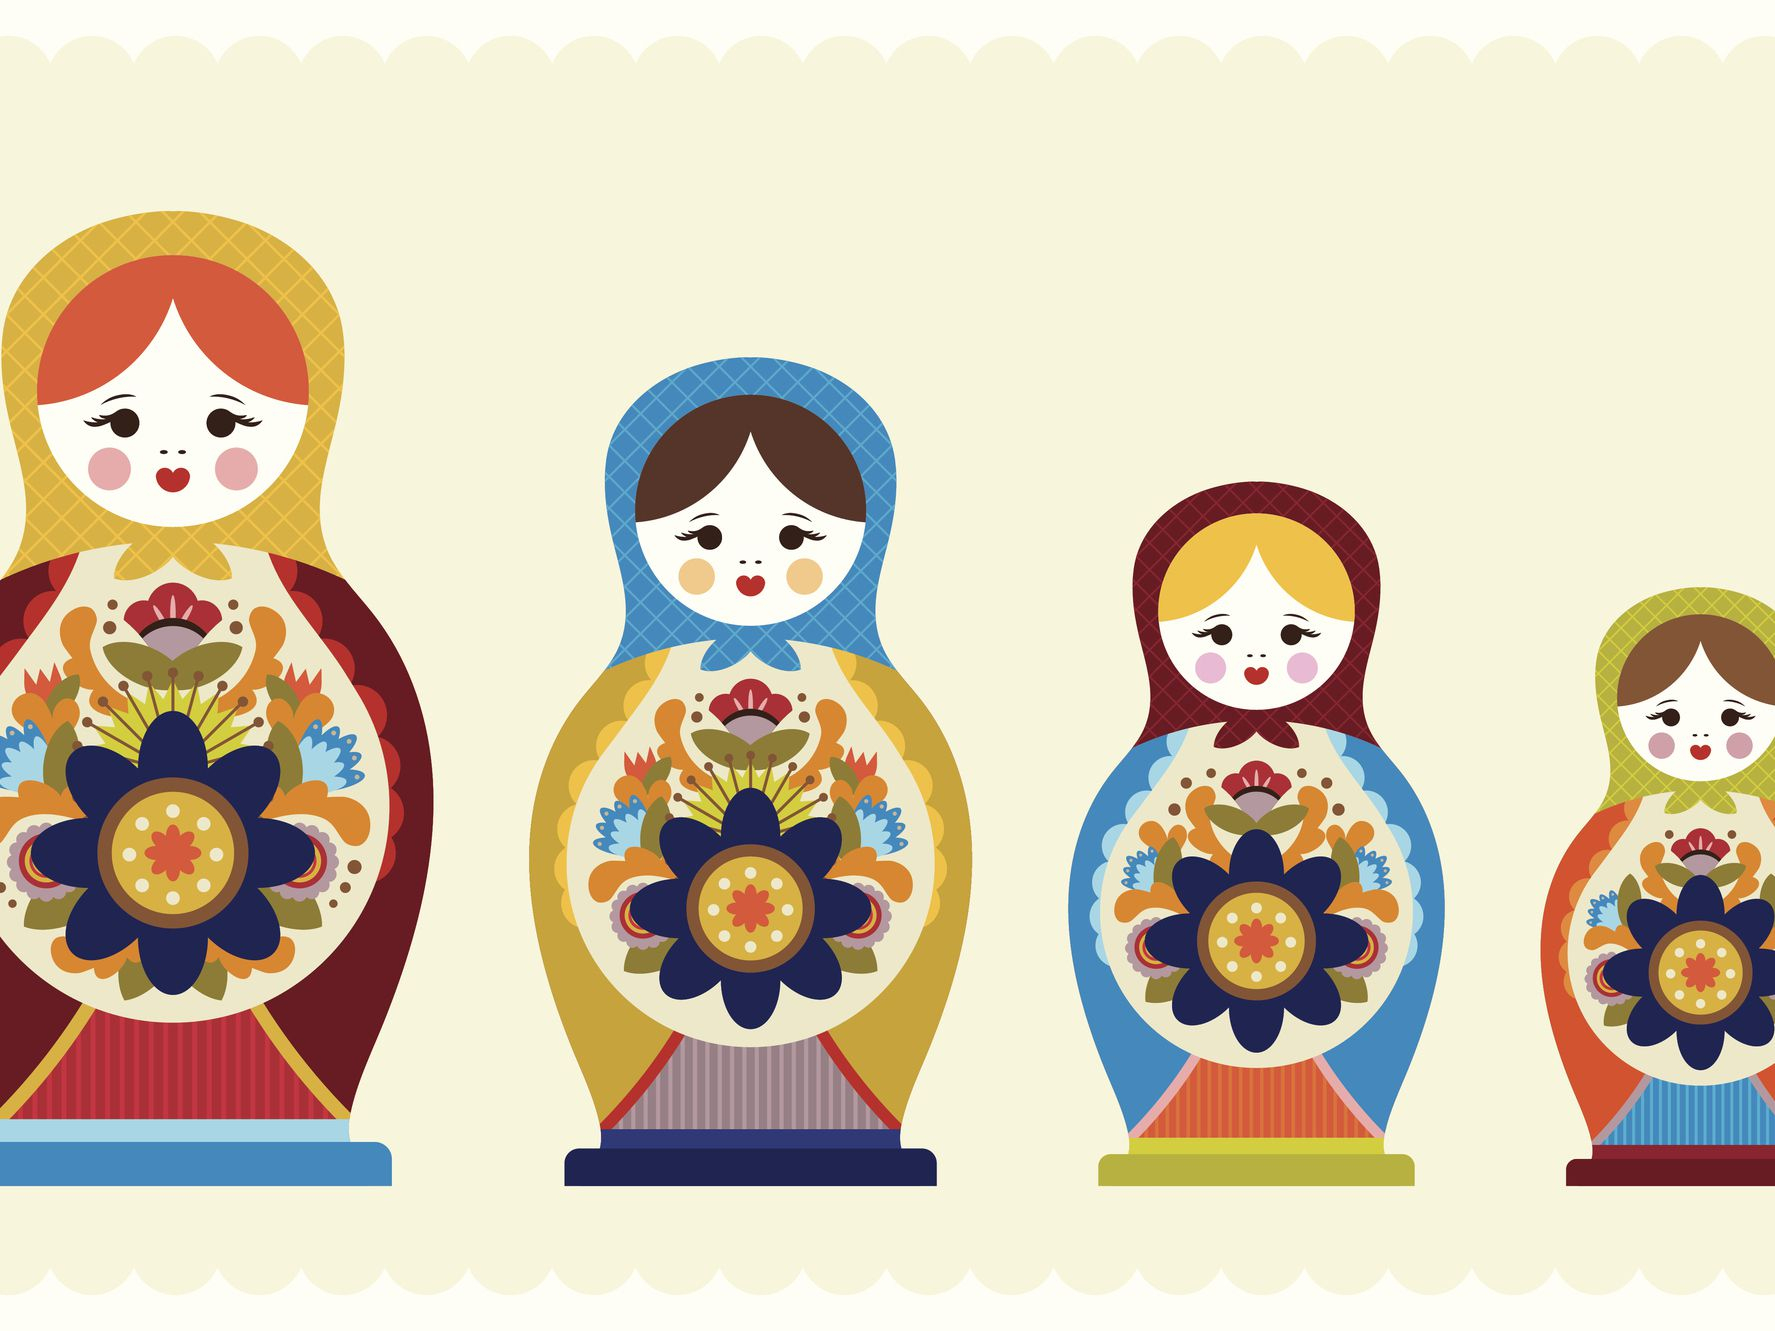 Russian Doll Template To Download And Print - Free Printable Paper Dolls From Around The World